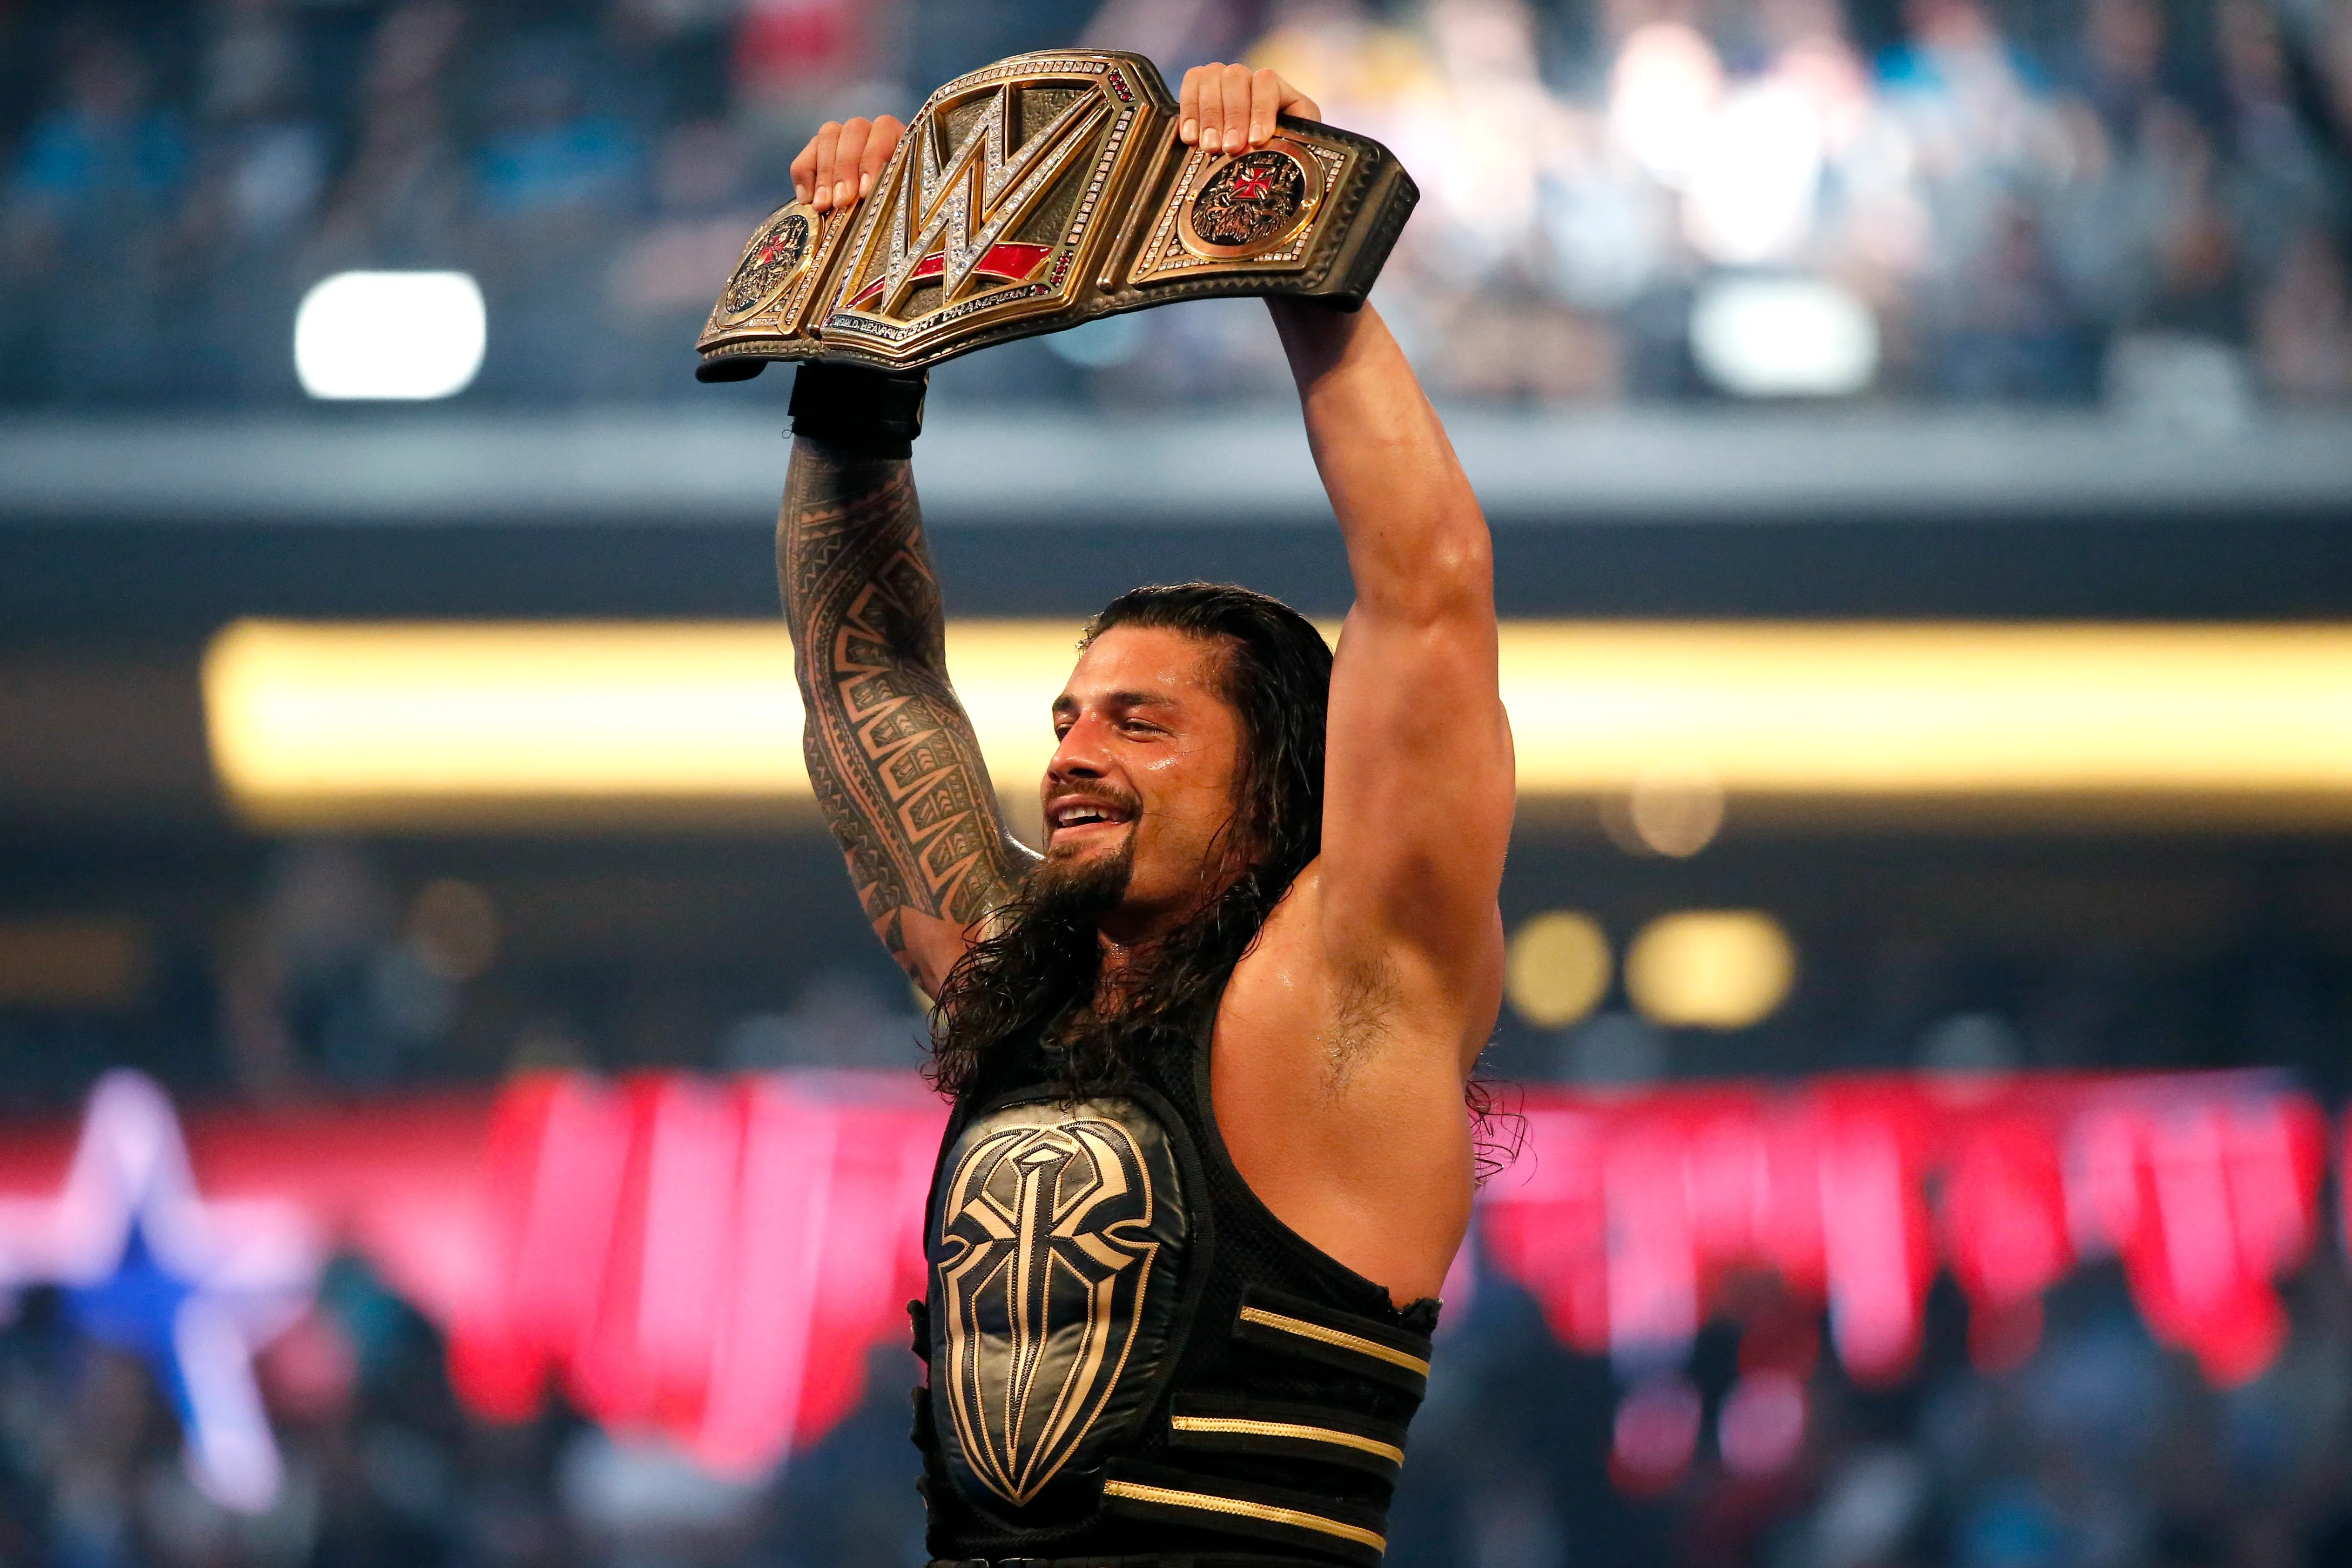 Roman Reigns announces on WWE Raw his leukemia is in remission